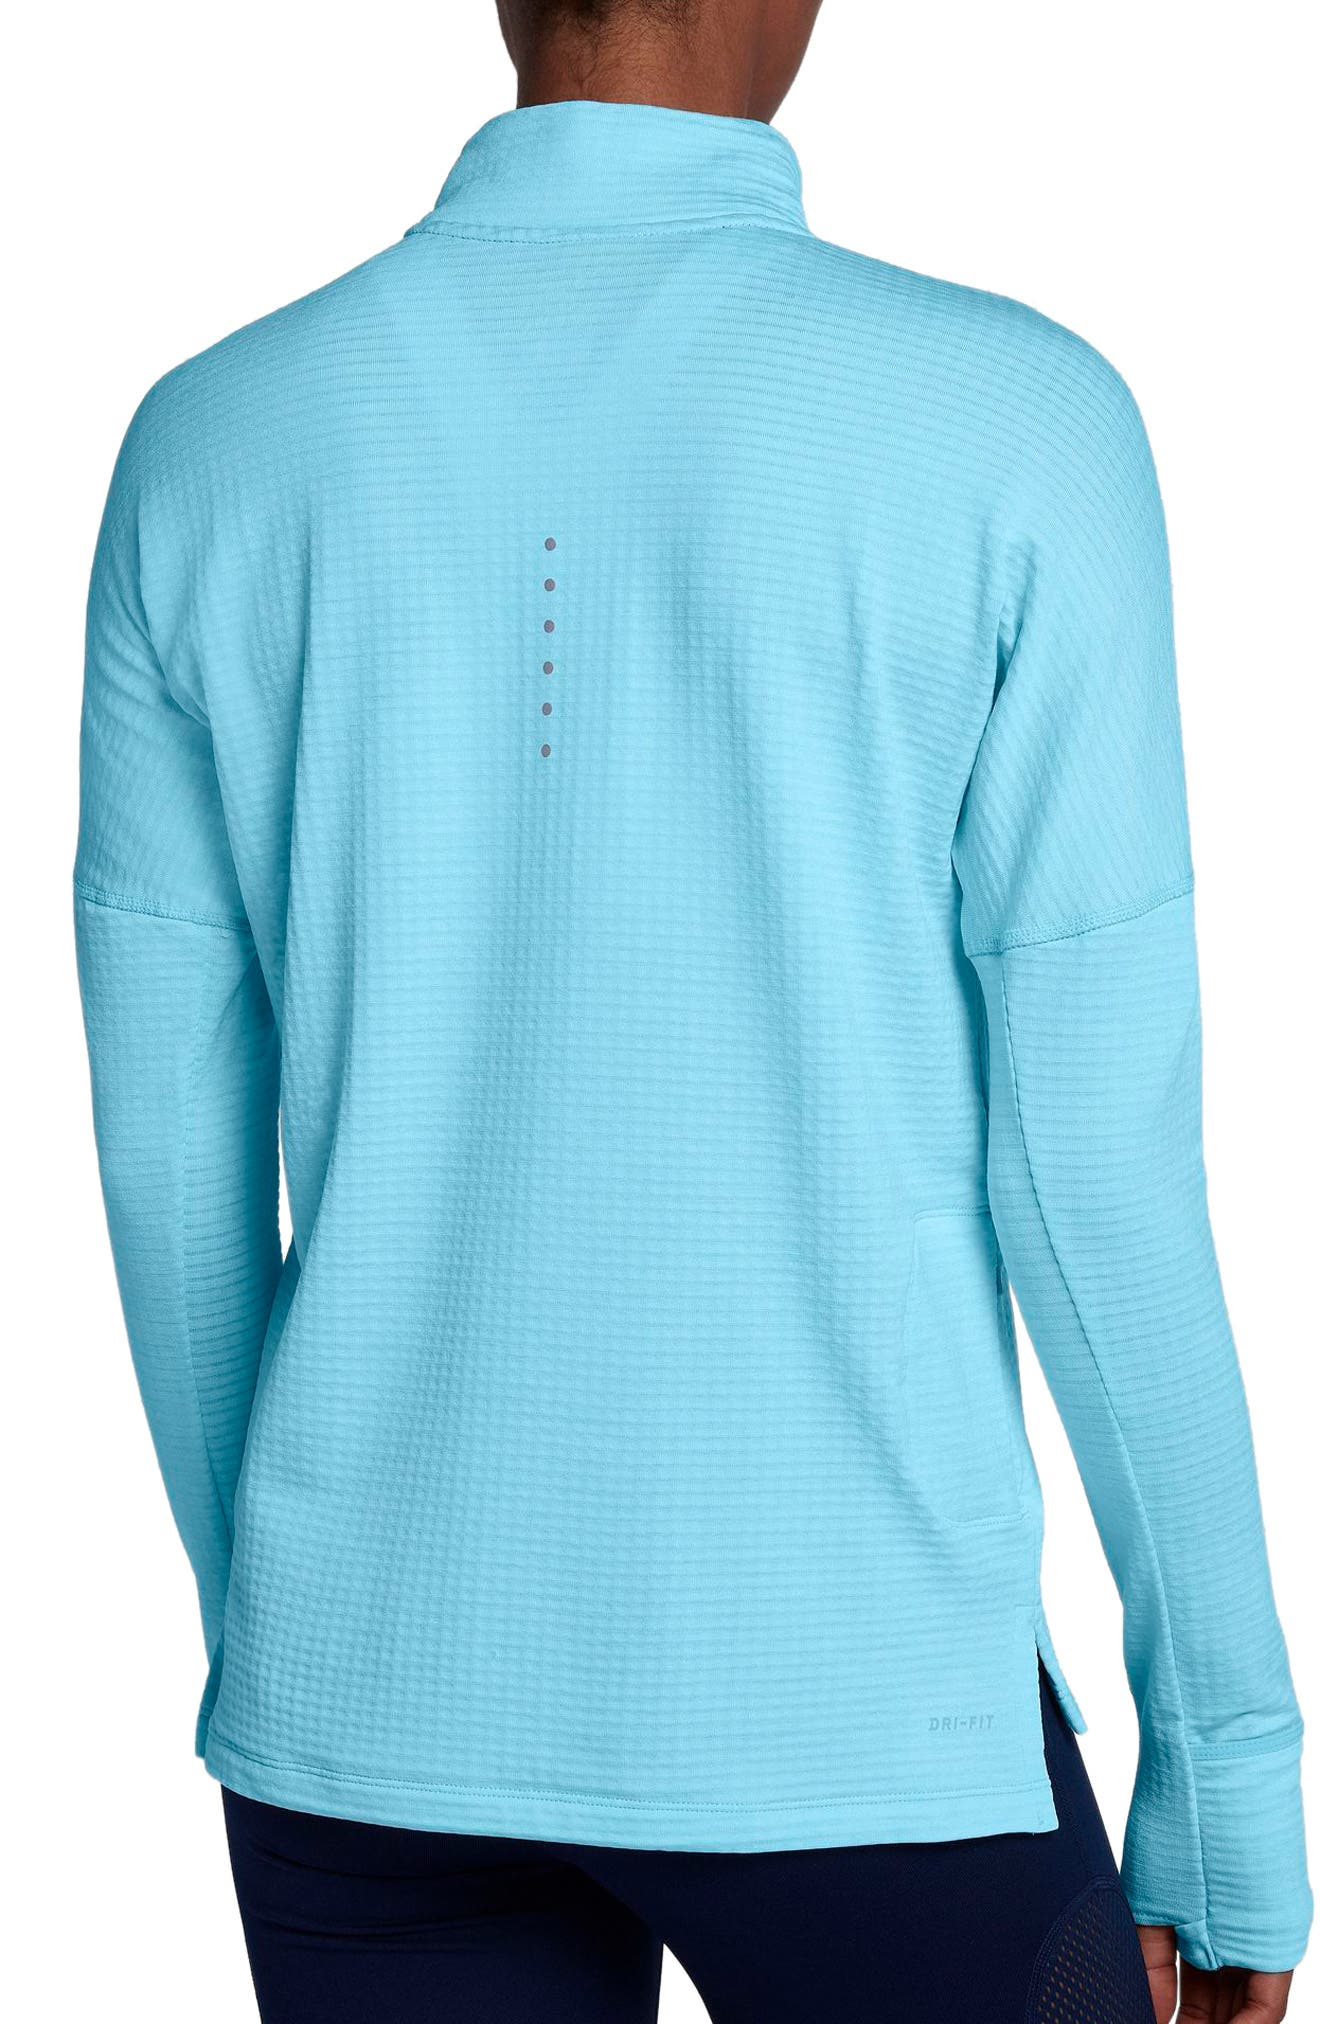 Therma Sphere Element Running Pullover Top,                             Alternate thumbnail 2, color,                             Polarized Blue/ Htr